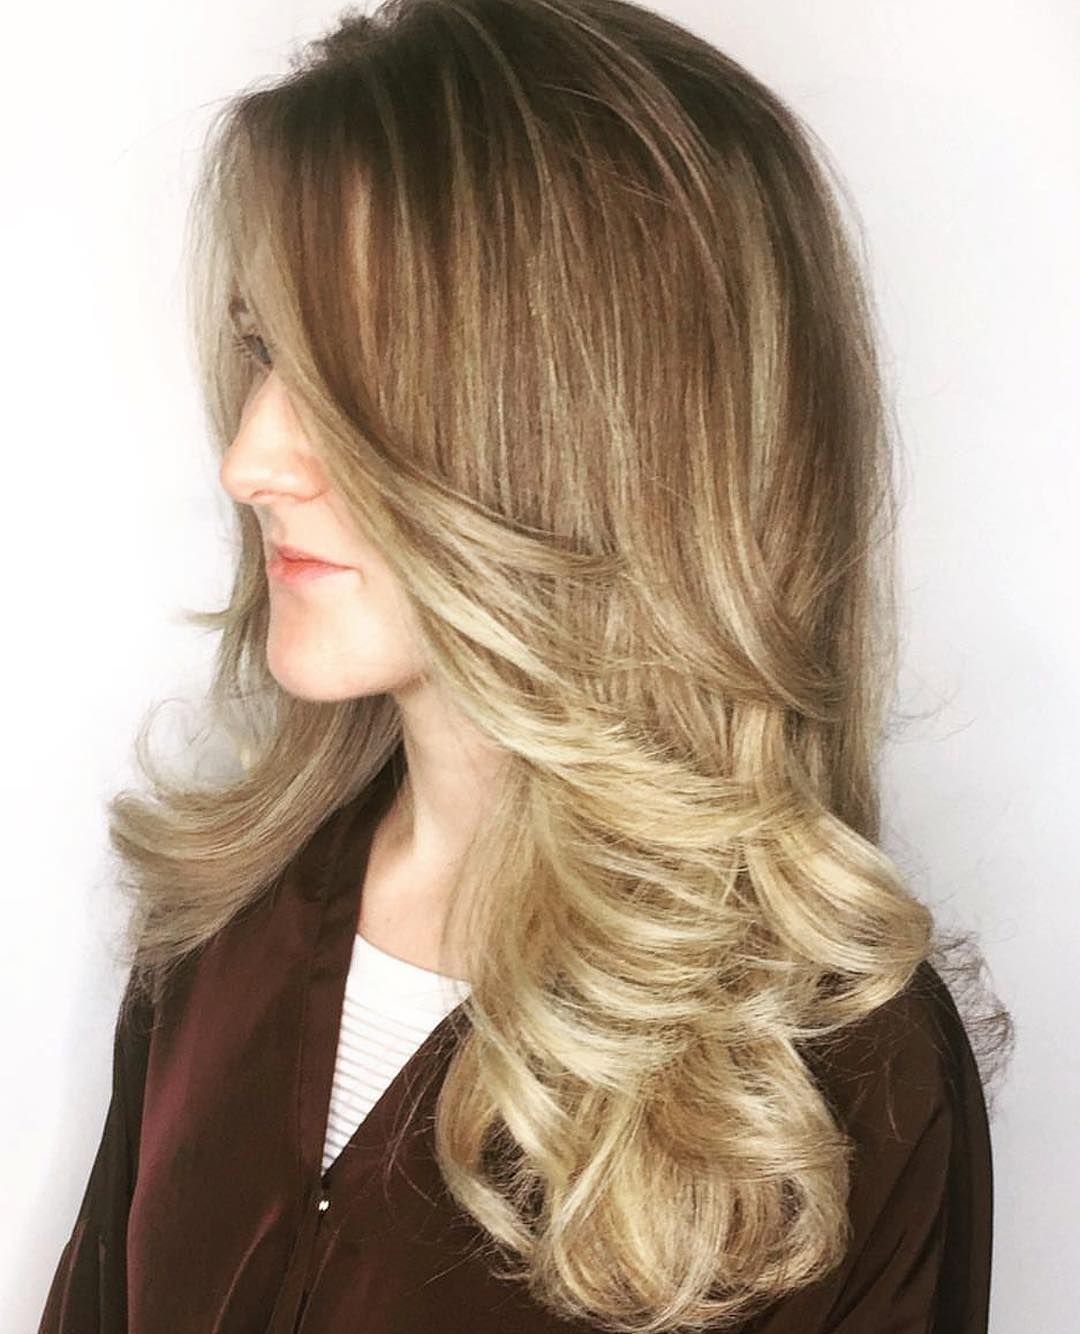 2018 is finally hair happy new year from all of us at karma! hair